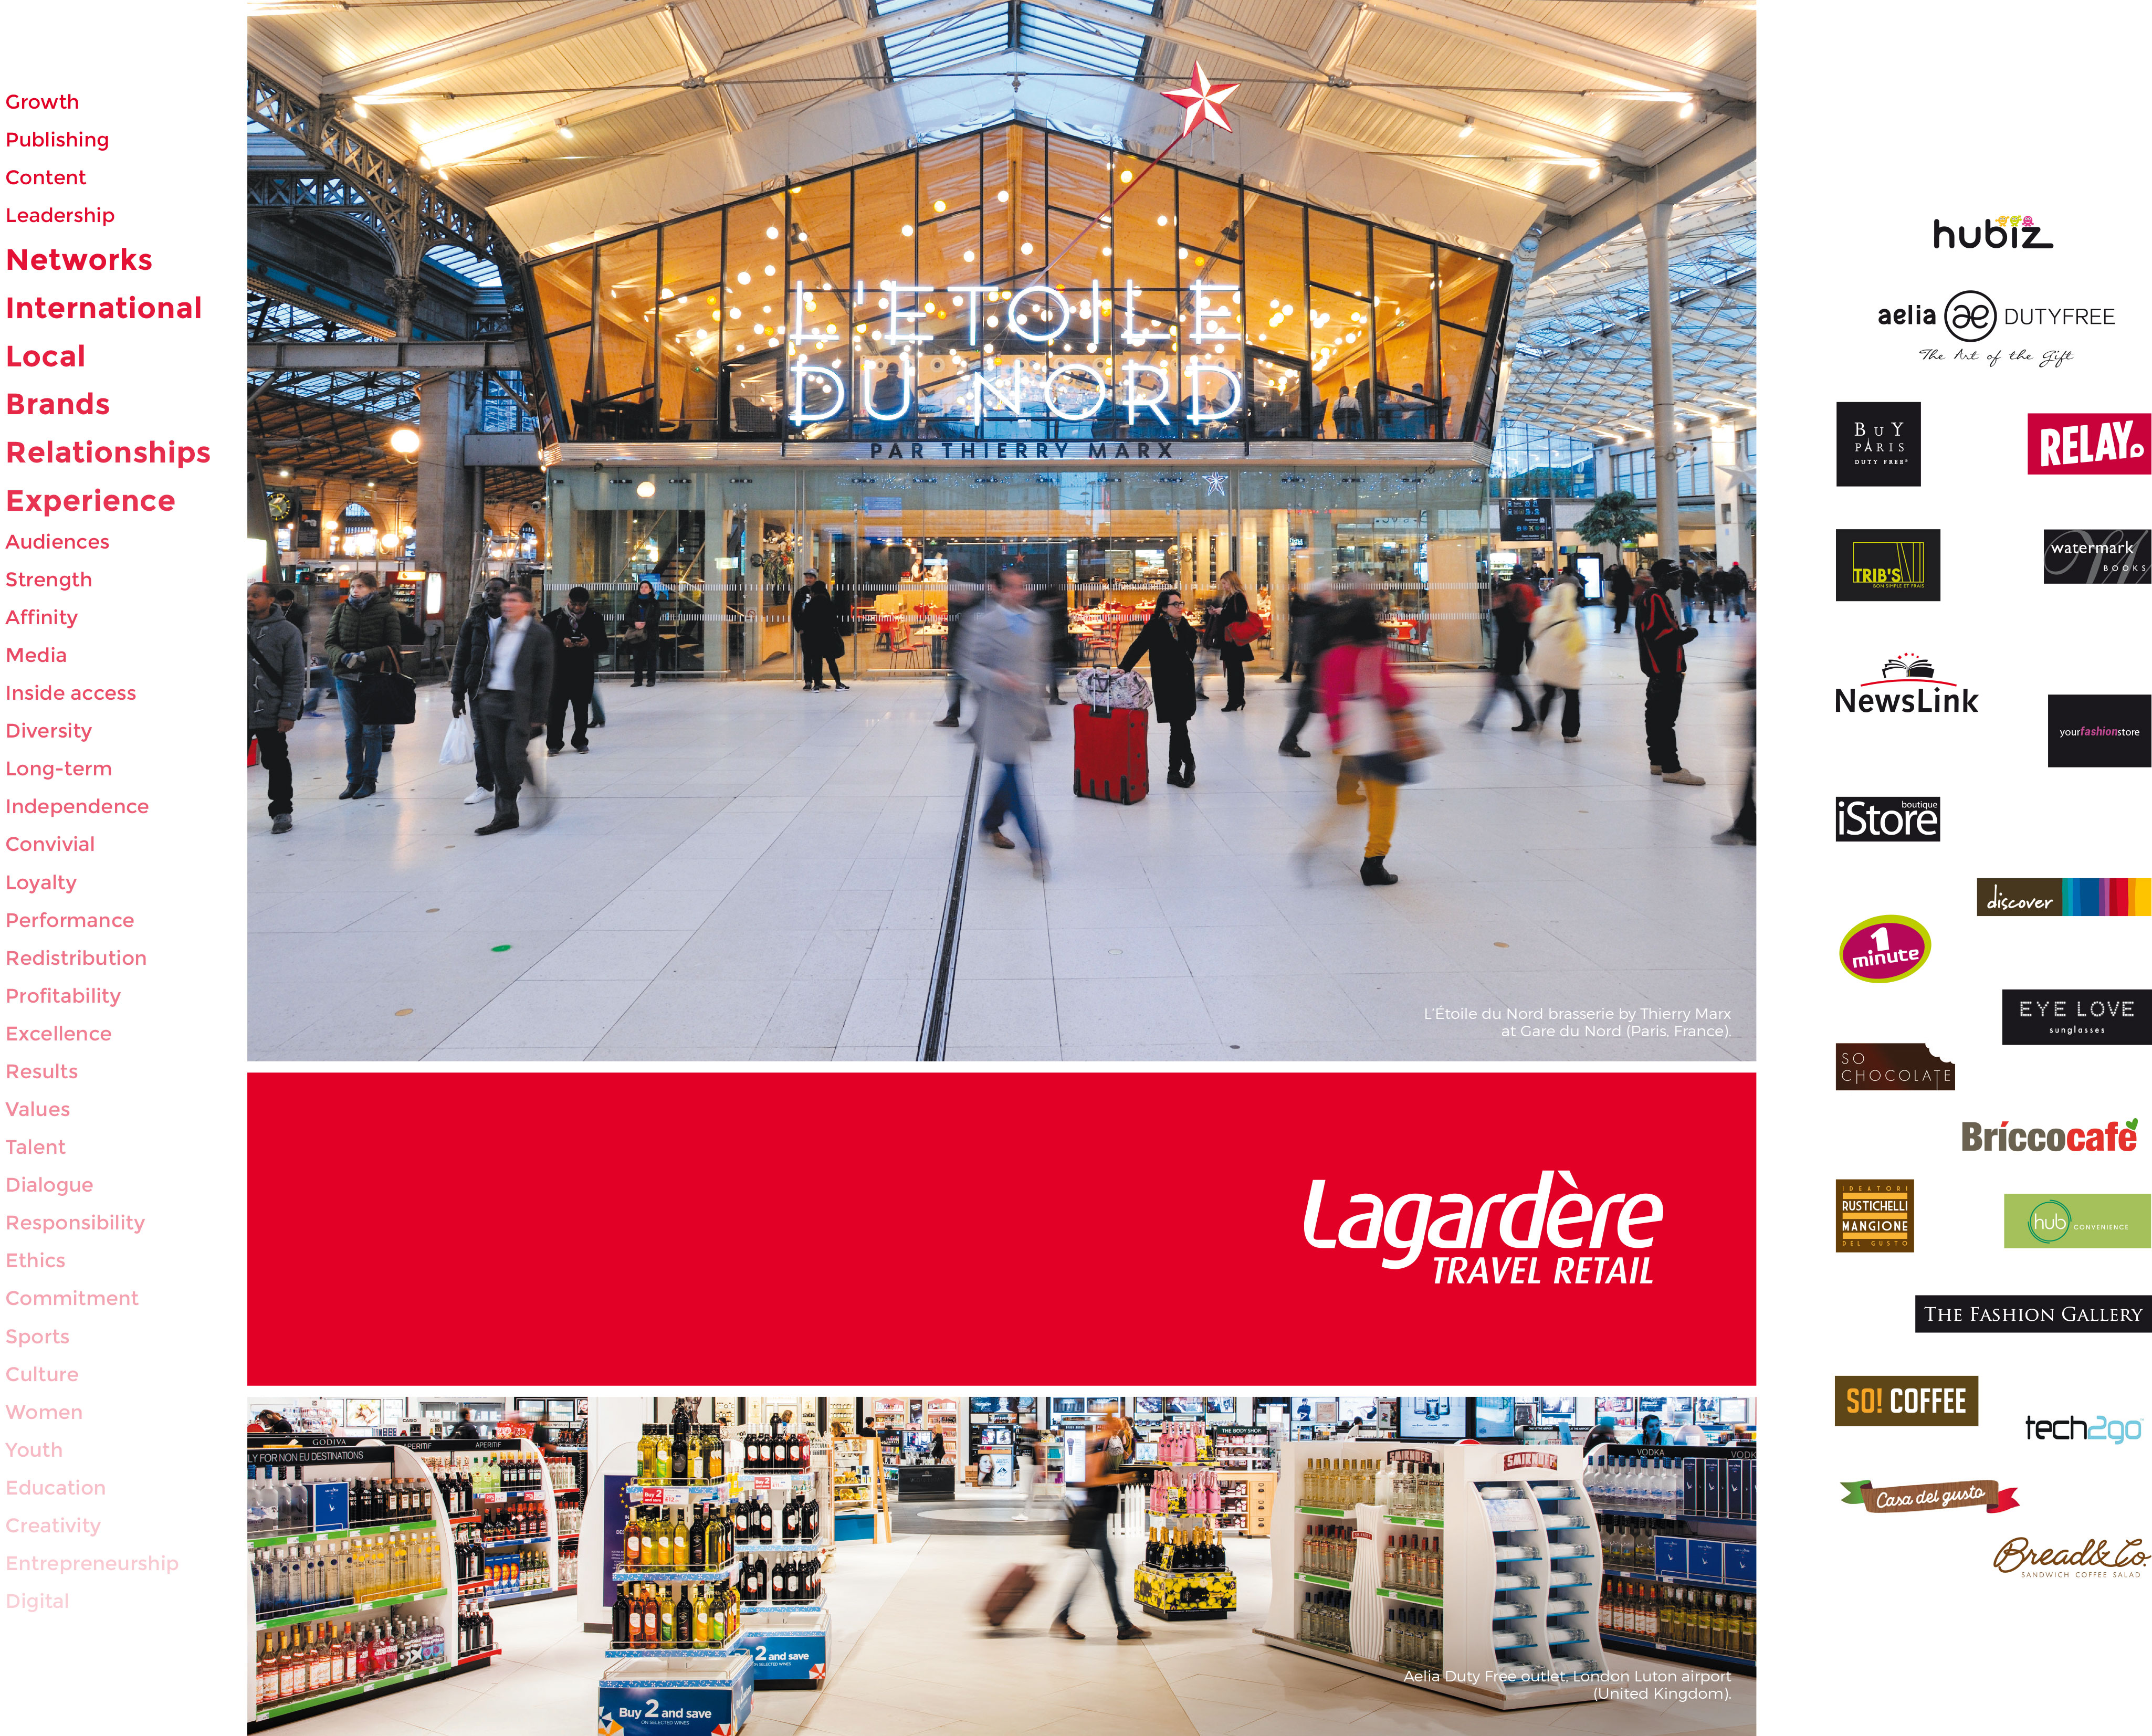 Lagardère Travel Retail - Above: L'Étoile du Nord brasserie by Thierry Marx at Gare du Nord (Paris, France) - Below: Aelia Duty Free outlet, London Luton airport (United Kingdom)